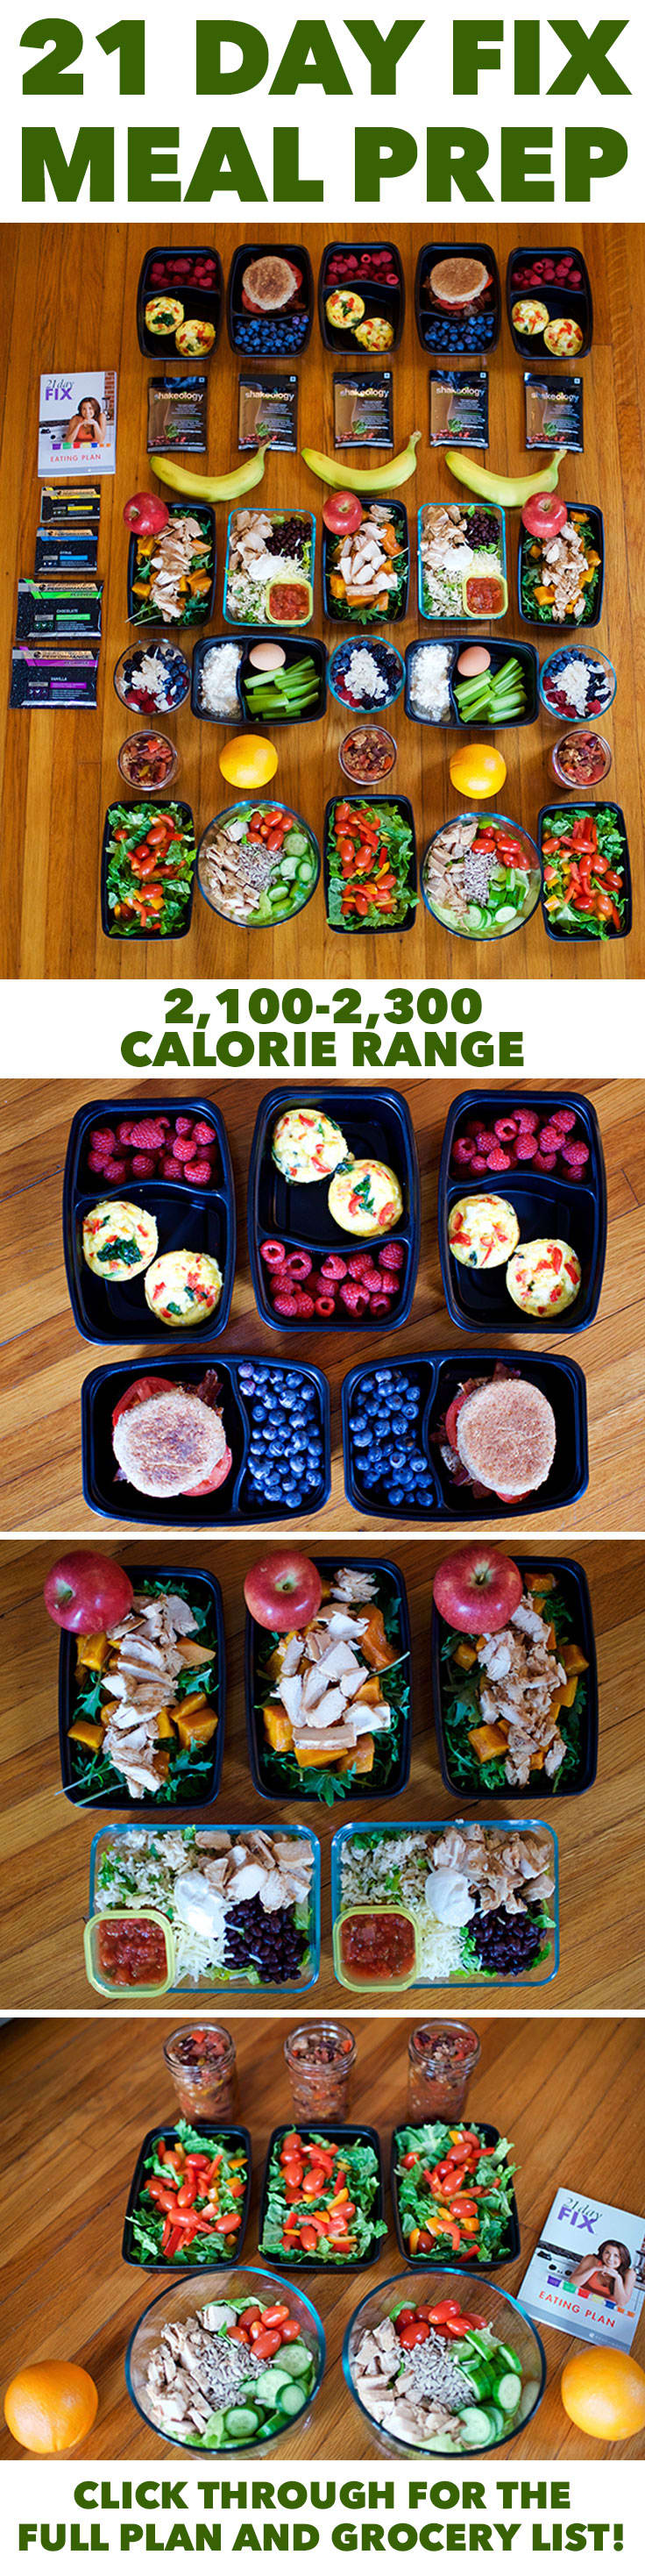 Meal Prep for the 21 Day Fix 2,100–2,300 Calorie Level #mealplan #mealplanning #mealprep #21dayfixmeals #21dayfix #21dayfixrecipes #healthyeating